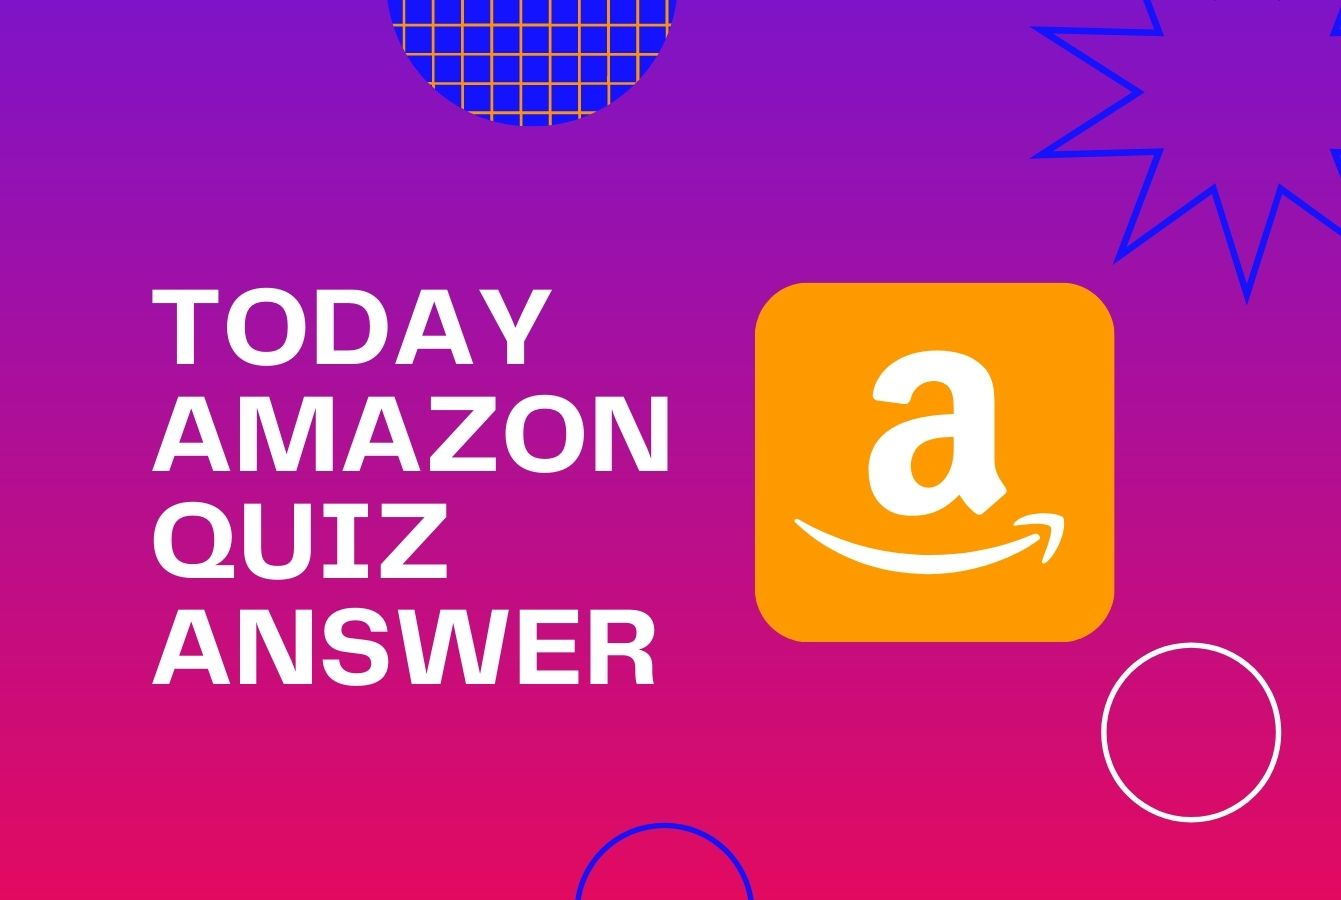 amazon answer and win, amazon answers today, amazon answers today quiz, amazon app only quiz, amazon app quiz, amazon app quiz answers, amazon contest, amazon contest answers, amazon daily quiz today, amazon daily quiz today answer, amazon daily quiz, amazon fun zone, amazon fun zone answers, amazon fun zone answers today, amazon quiz answer today, amazon quiz answers